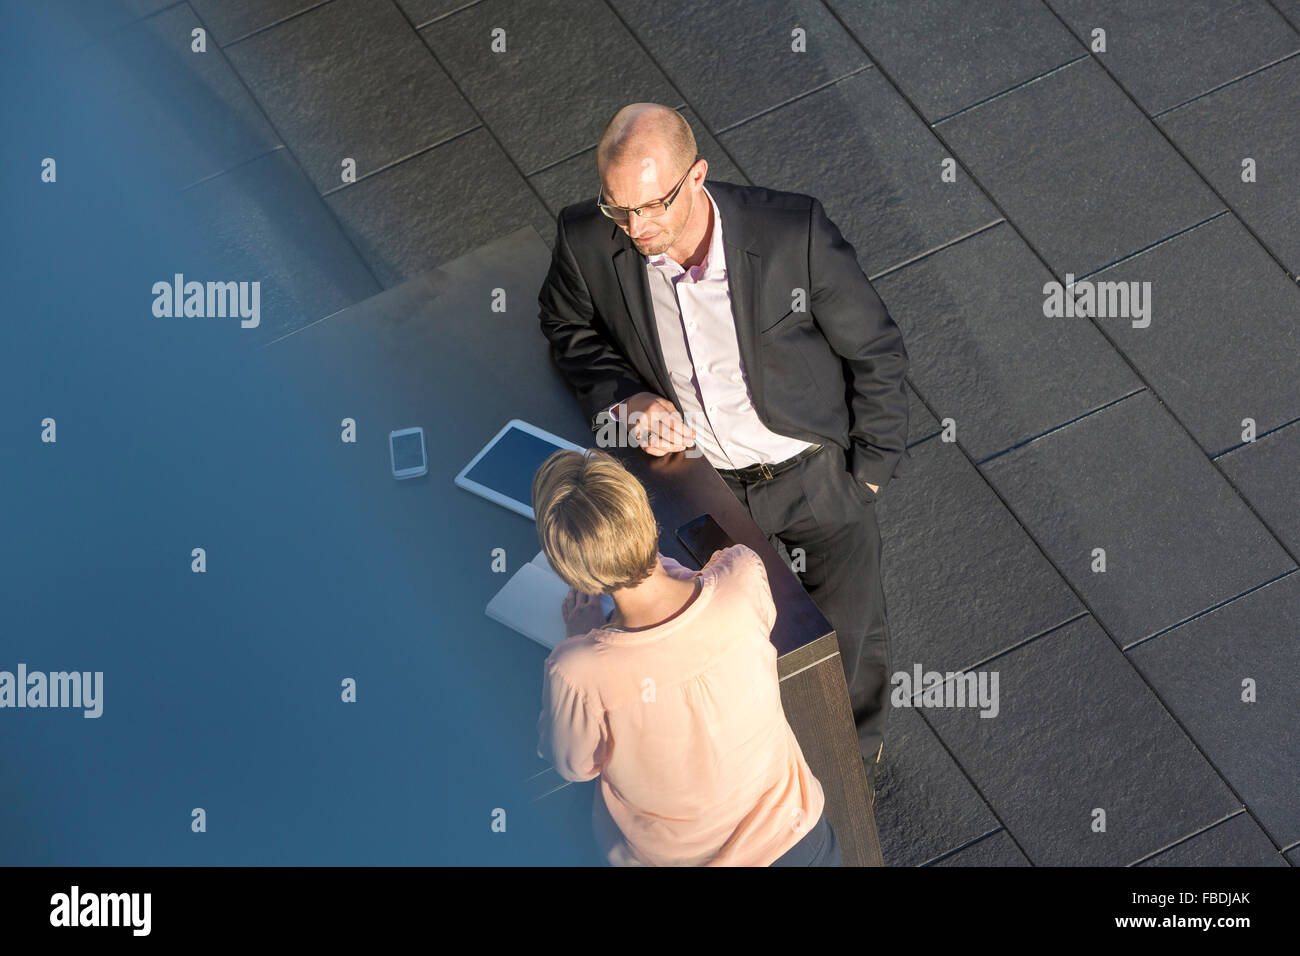 Business women and man discussing on bar table, elevated view - Stock Image